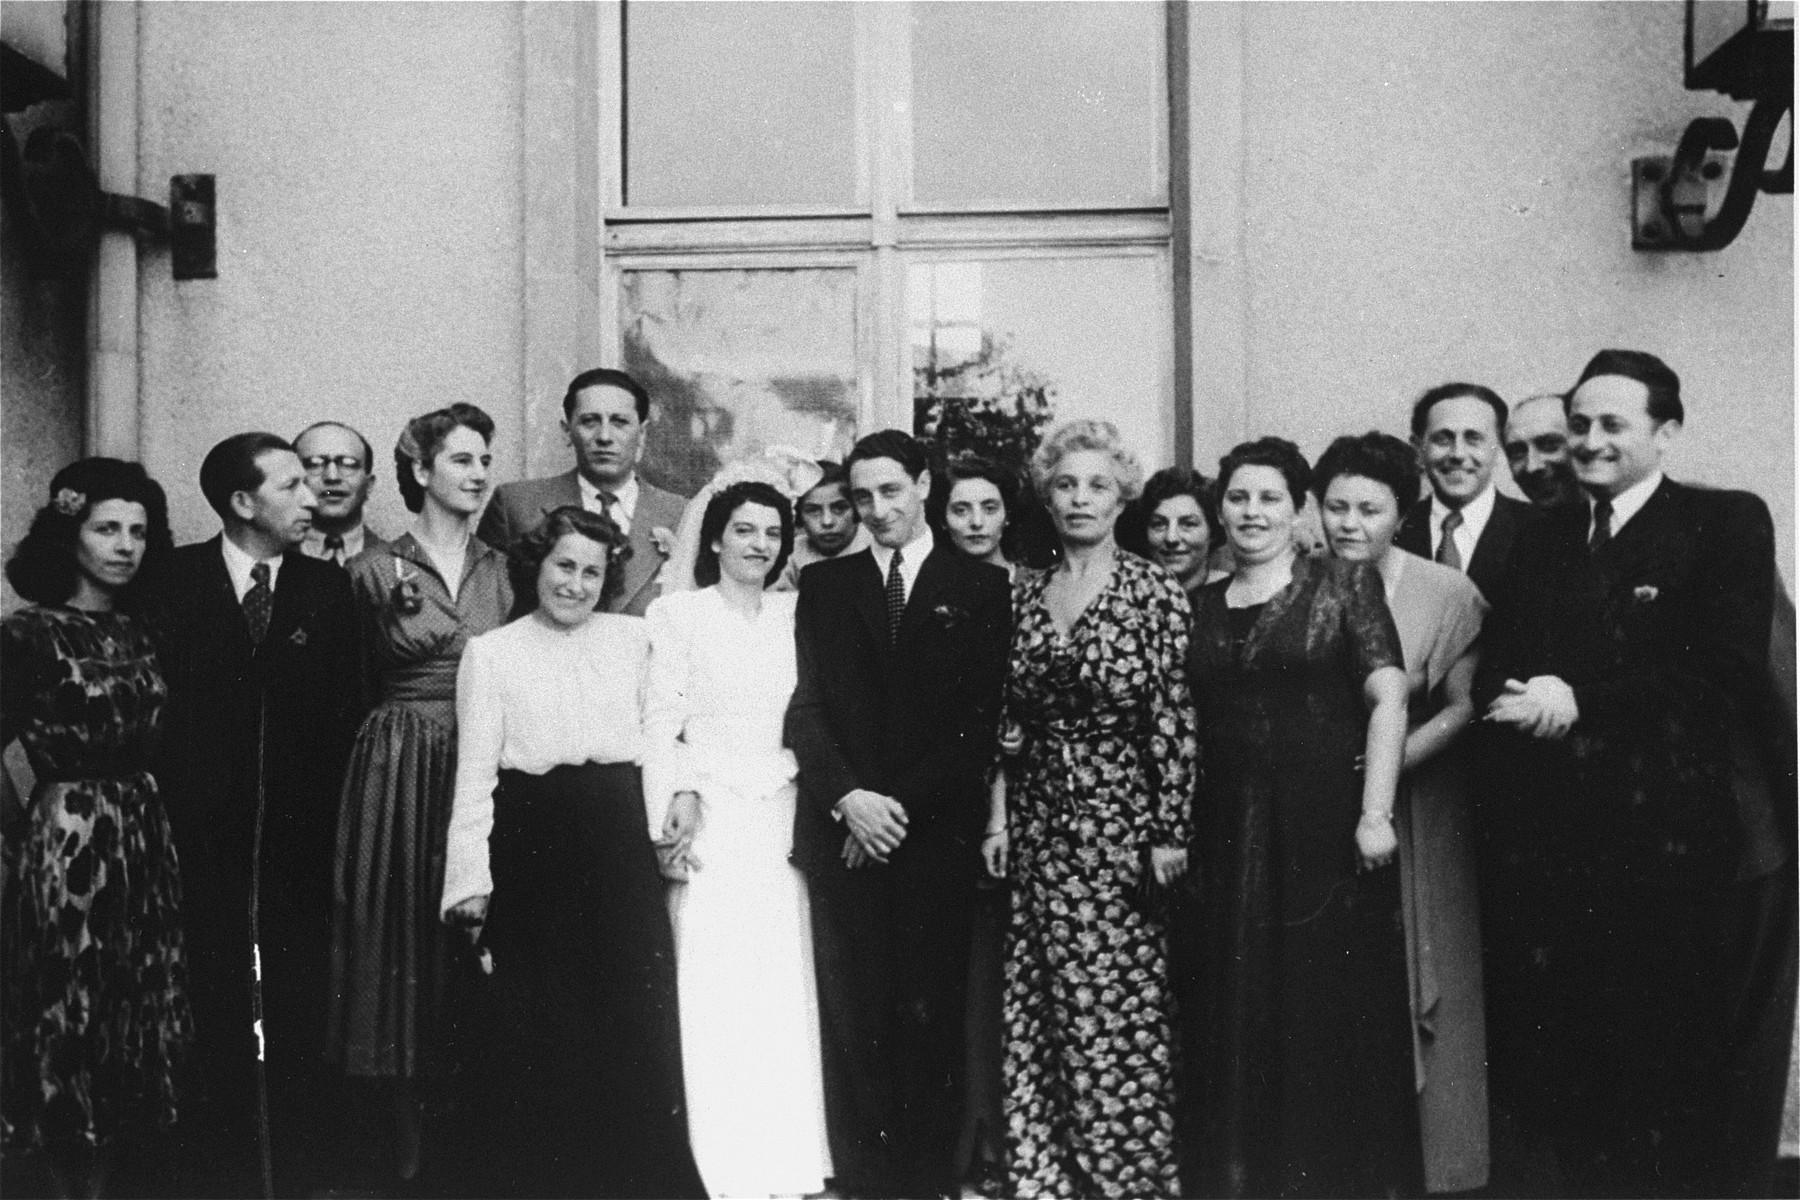 The wedding of Alice and John Fink (center) in the Bergen-Belsen DP camp.  Also pictured are Peggy and Egon Fink (left), Rabbi Helfgott (extreme right), and to the right of John Fink, Ava Gottlieb, Herbert and Frieda Treitel.